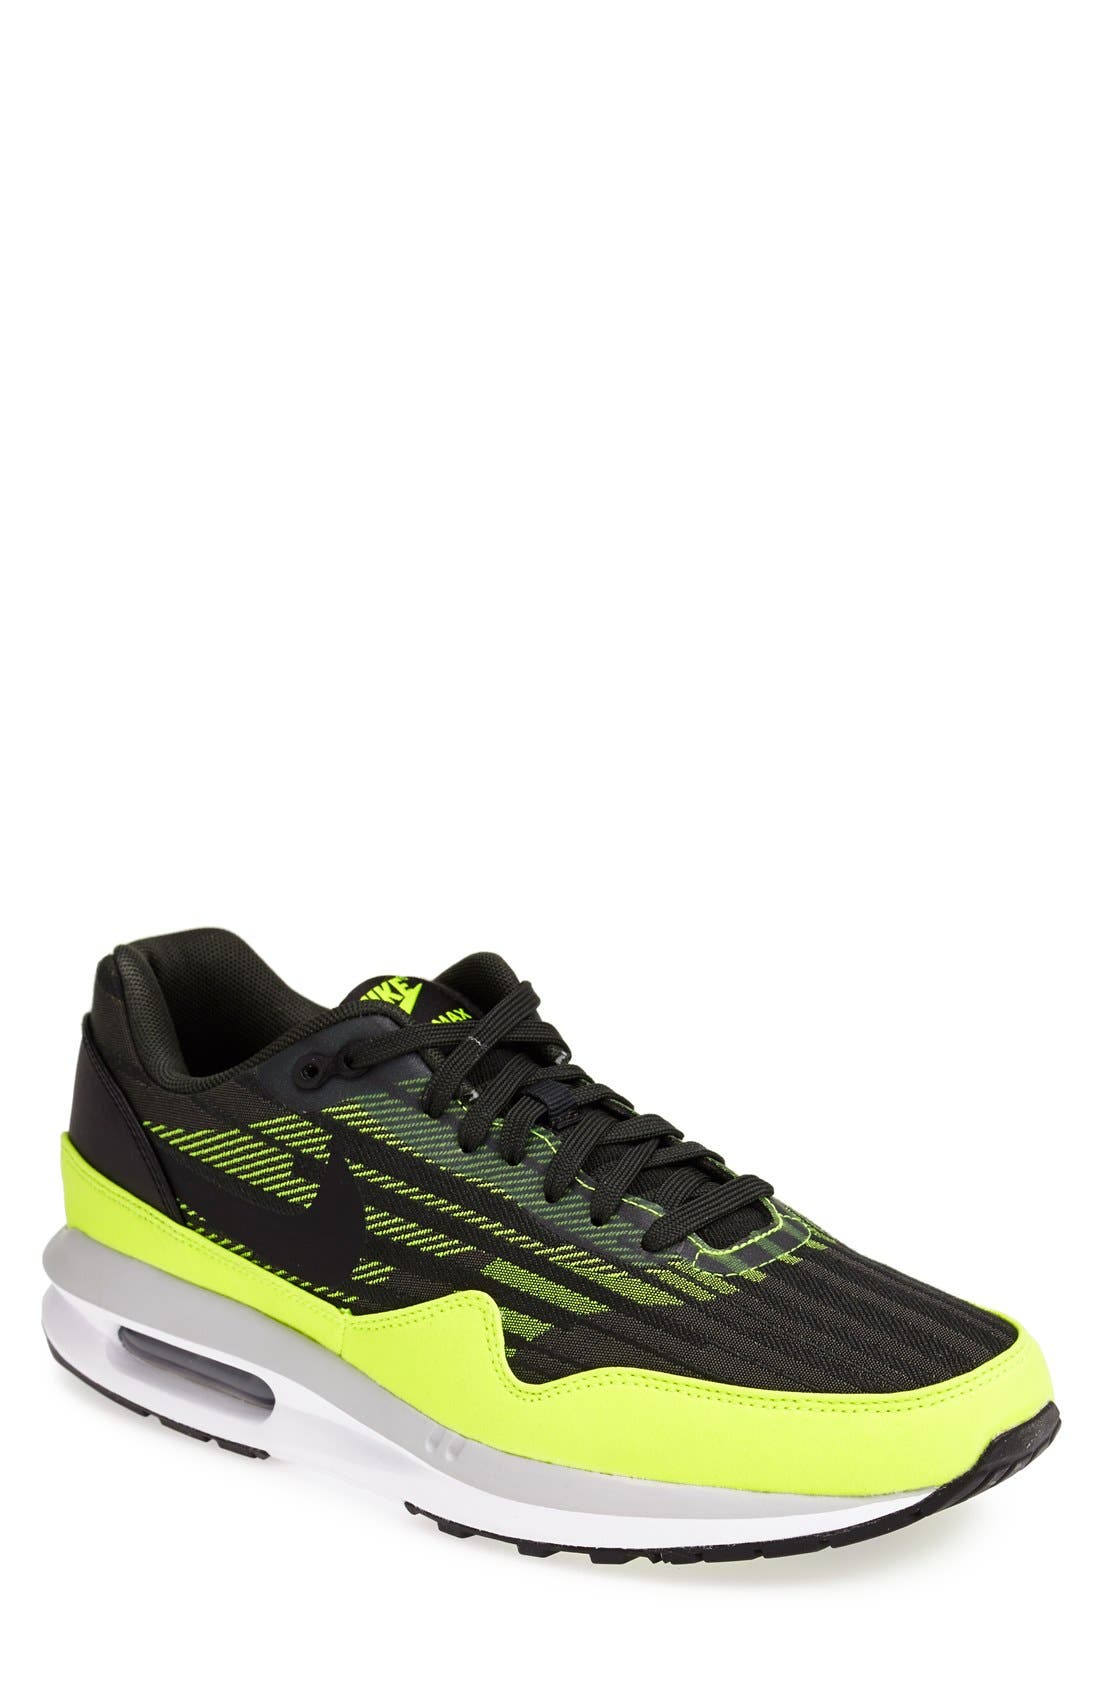 Alternate Image 1 Selected - Nike 'Air Max Lunar 1 Jacquard' Sneaker (Men)